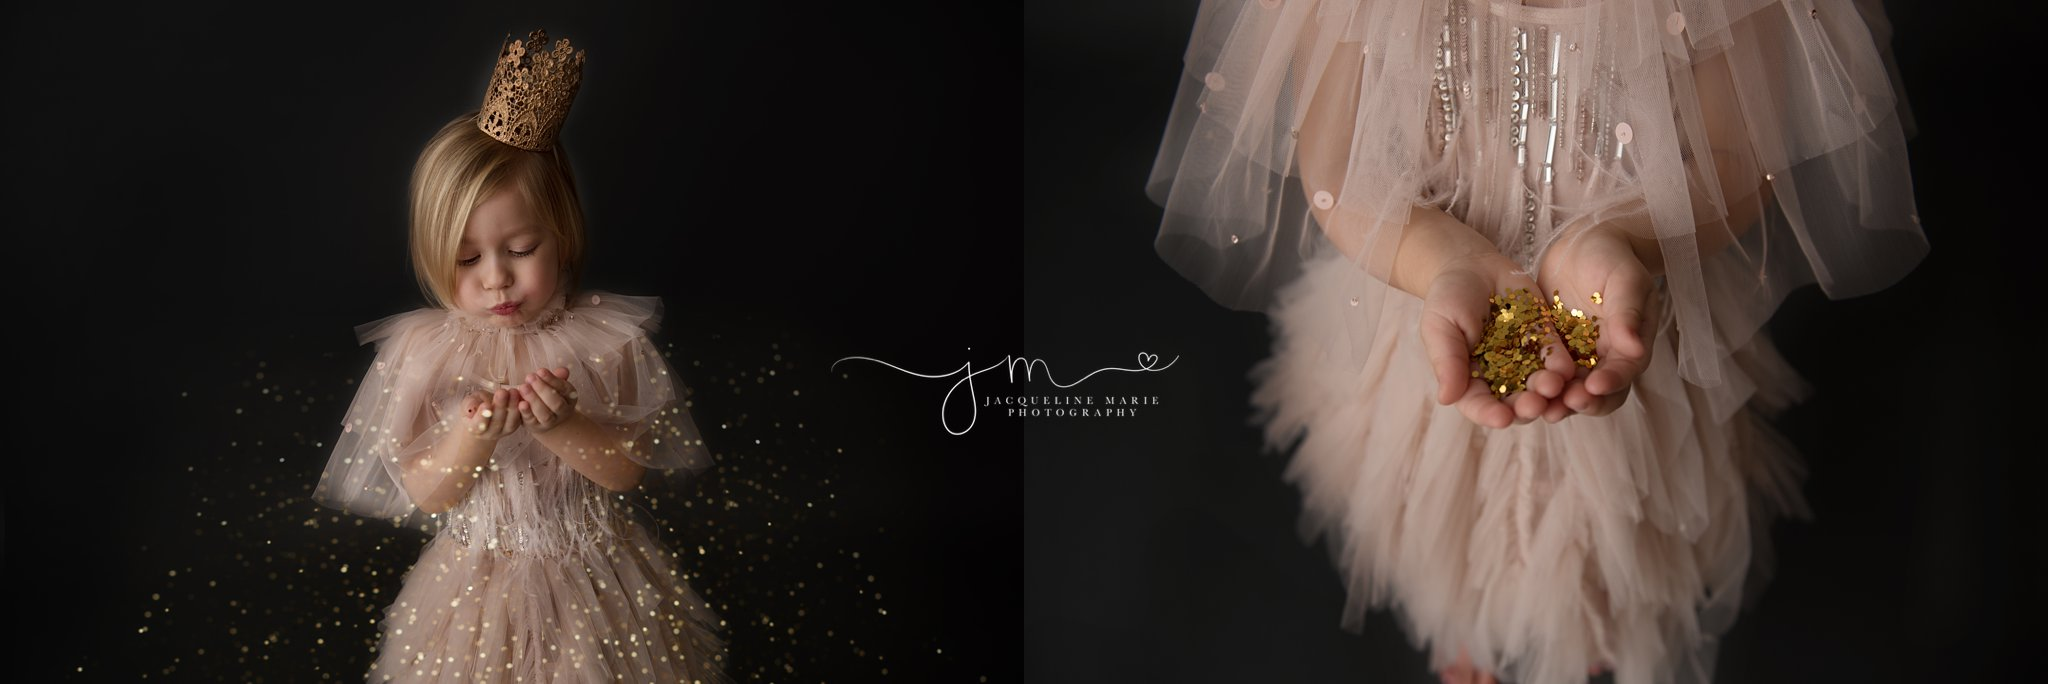 Glitter session with tutu du mode dress and gold crown in columbus ohio